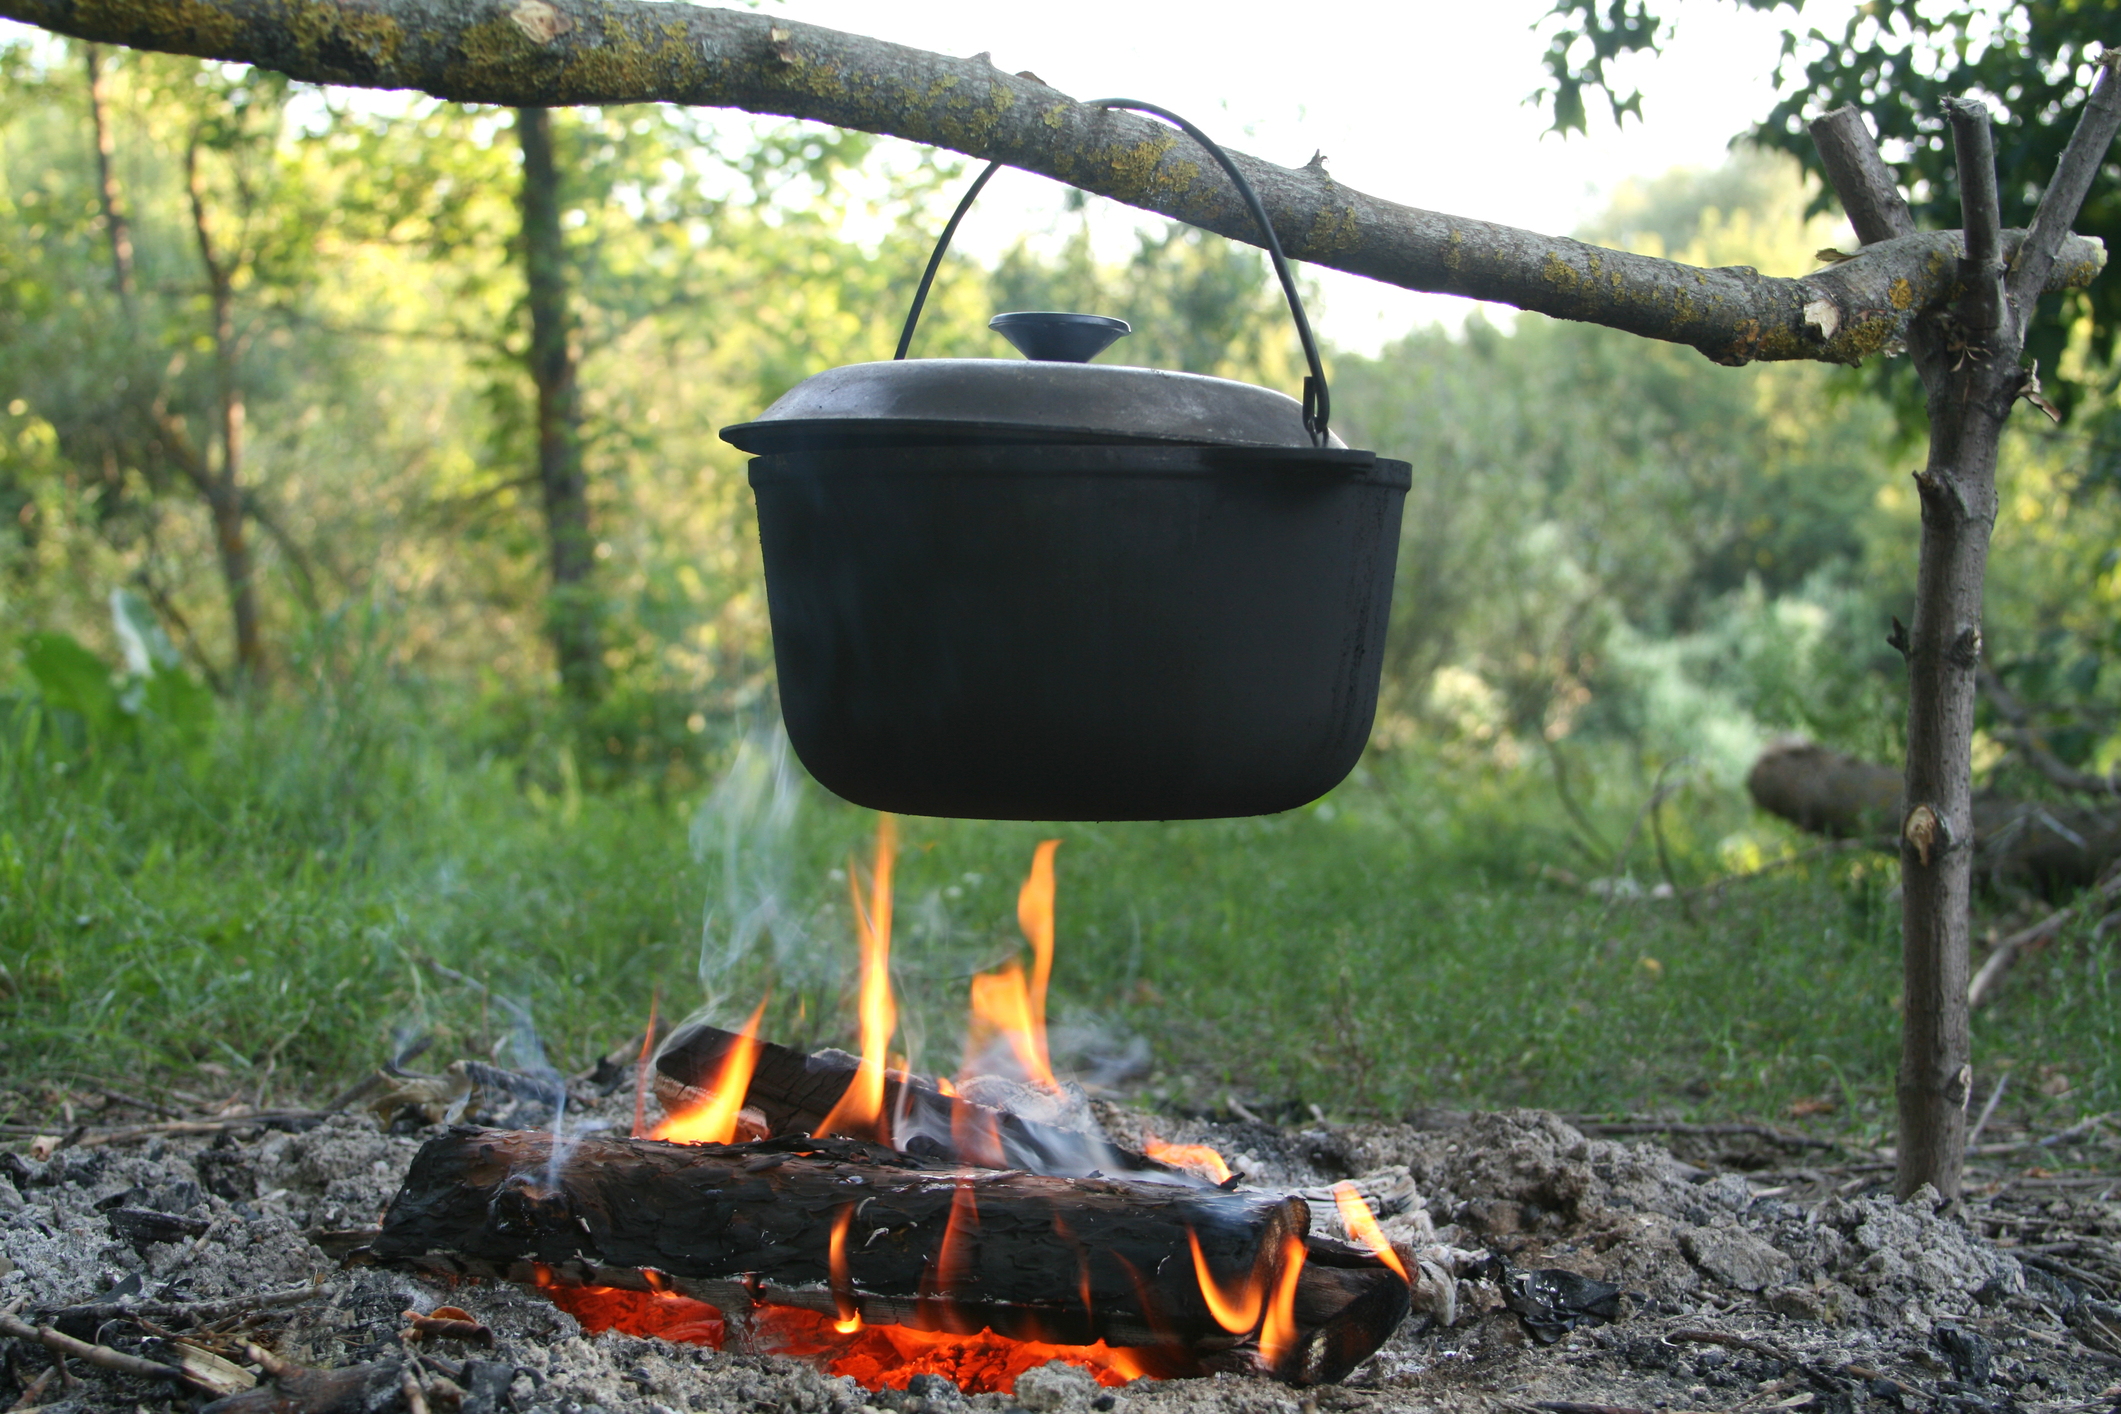 Campers Once Again Join the Season's Timeless Melting Pot